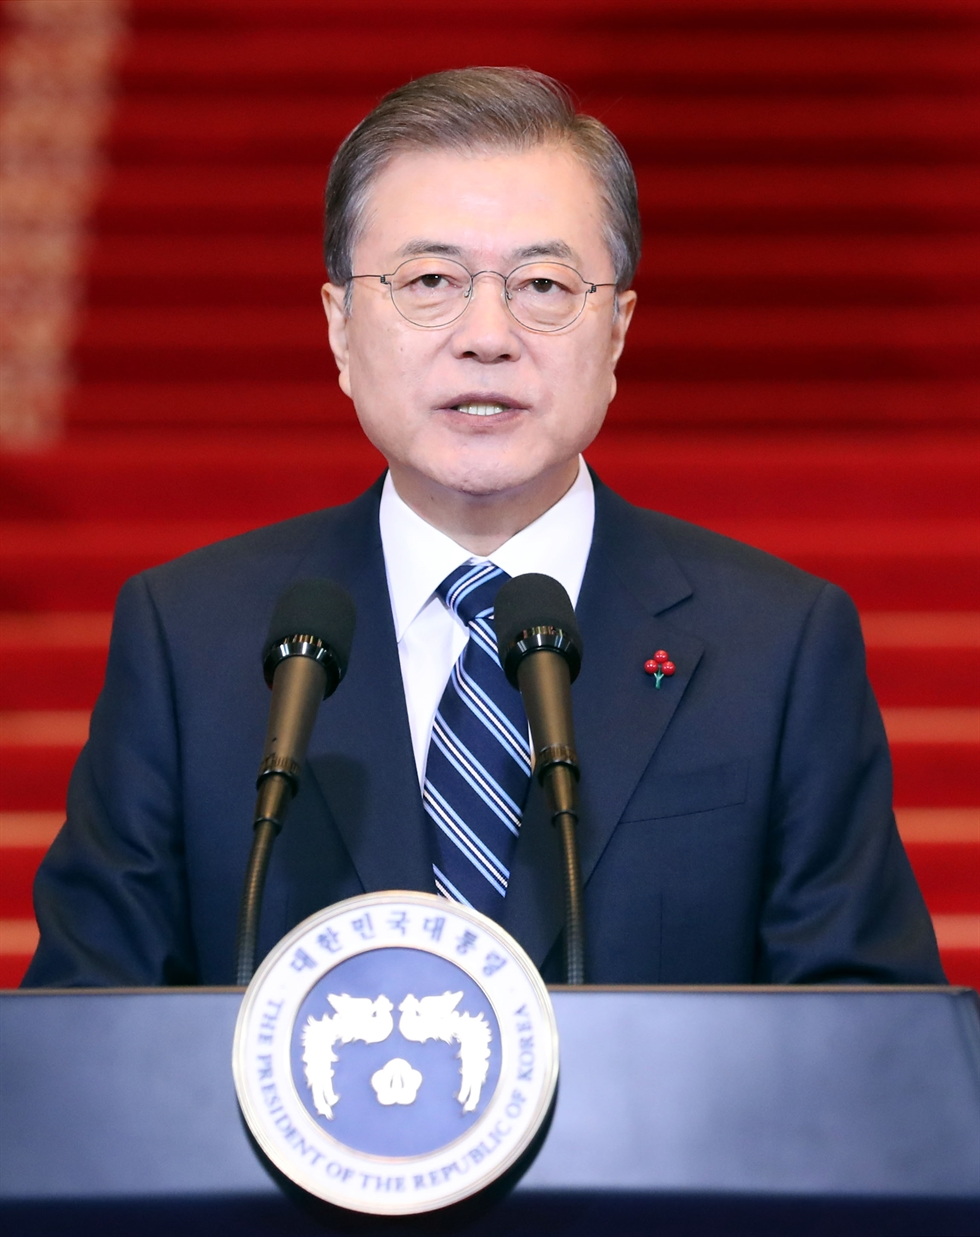 President Moon Jae-in congratulated The Korea Times for its 70th anniversary in a written message.